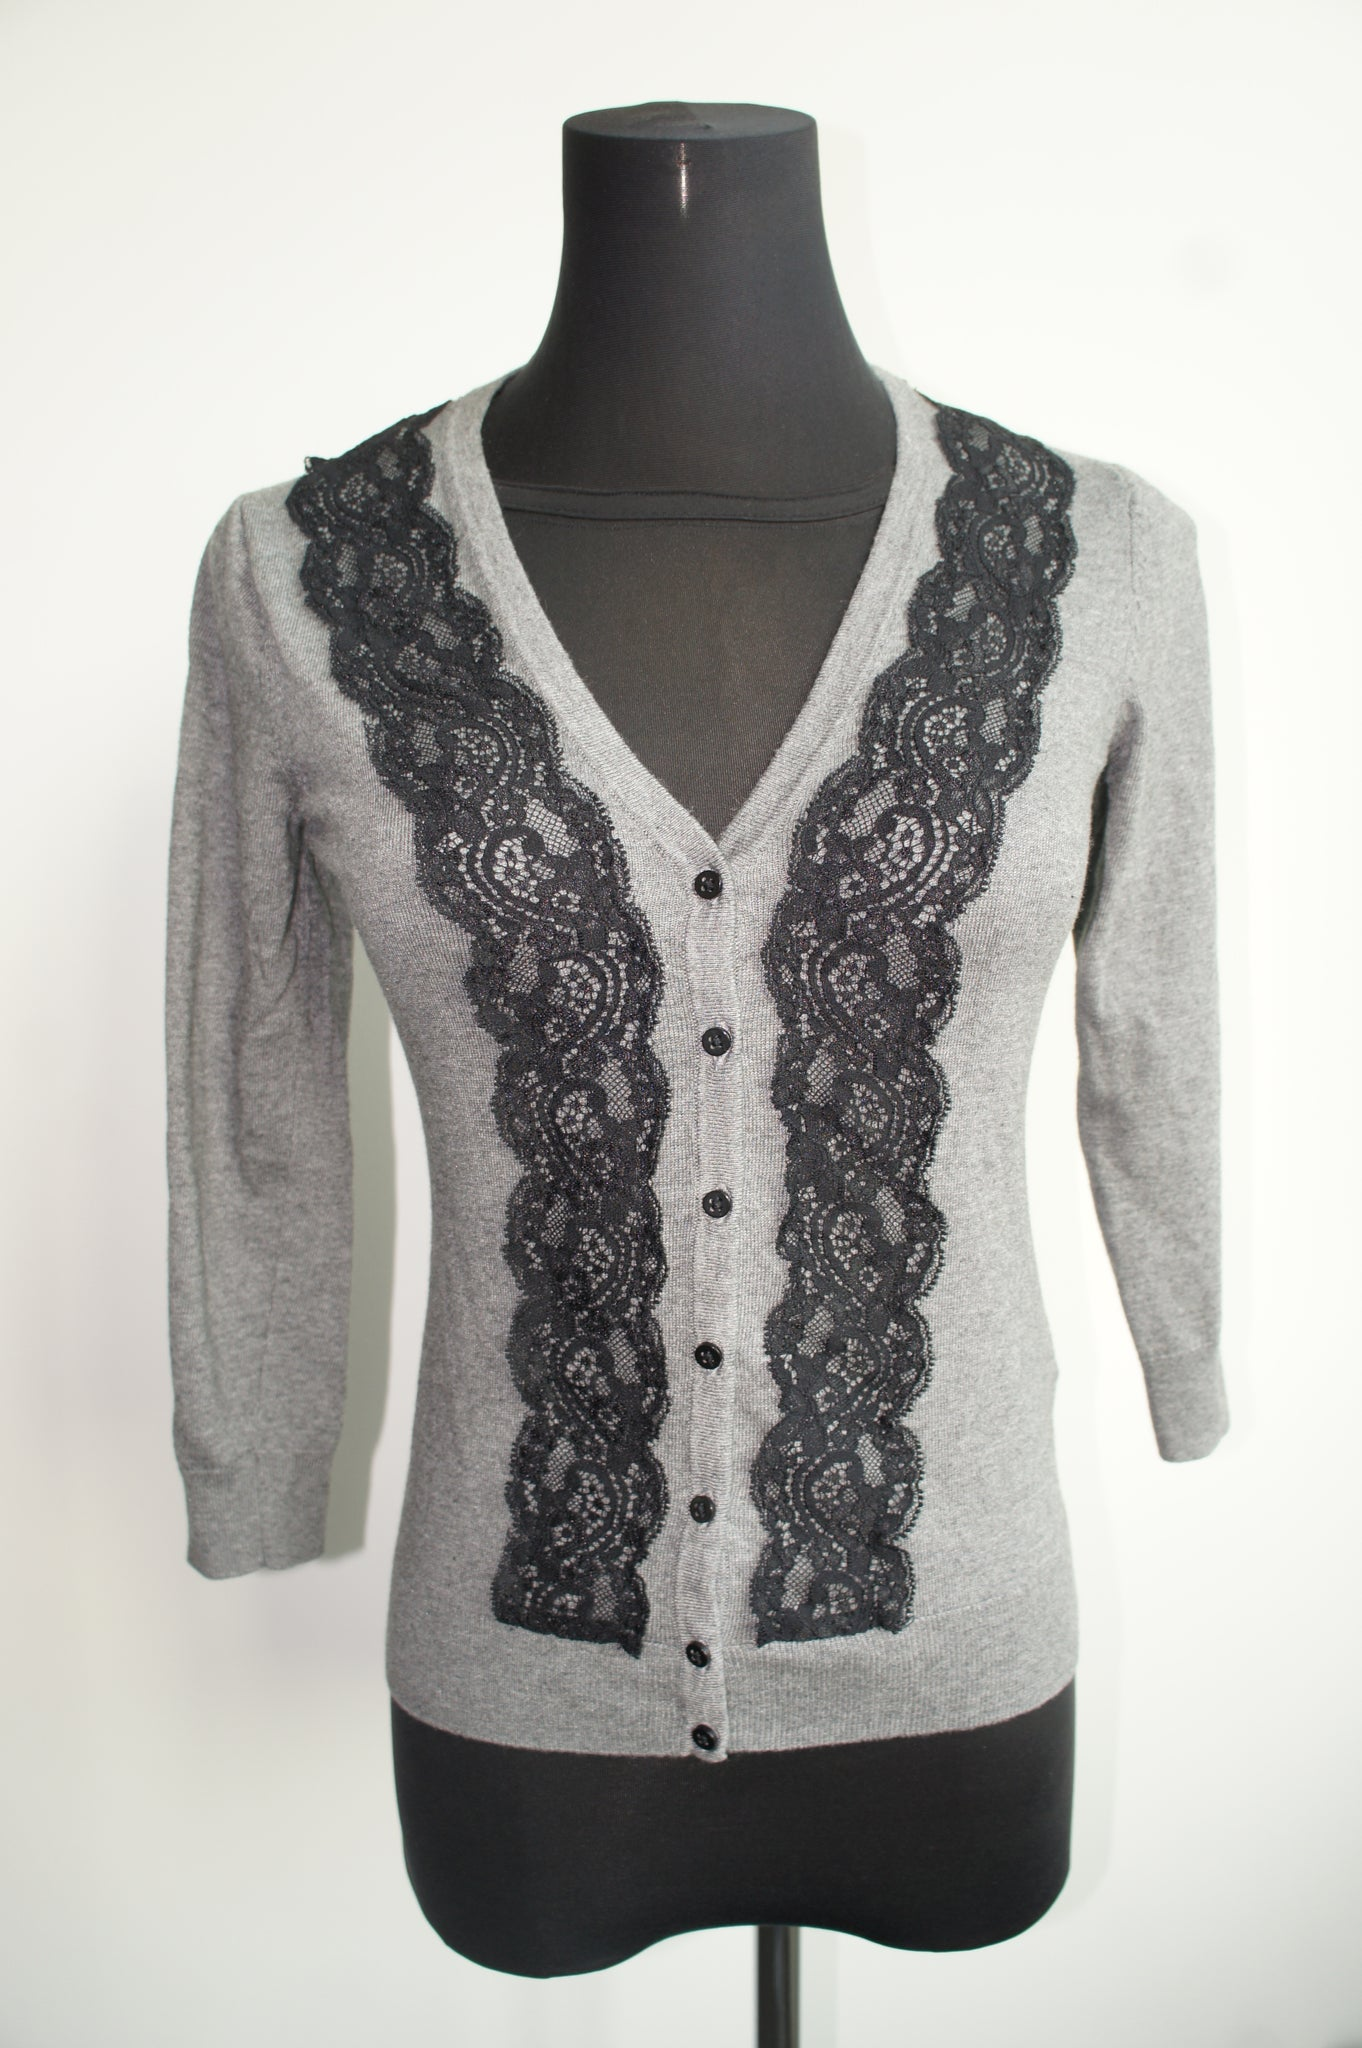 Fine Knit Cardigan (Preloved)